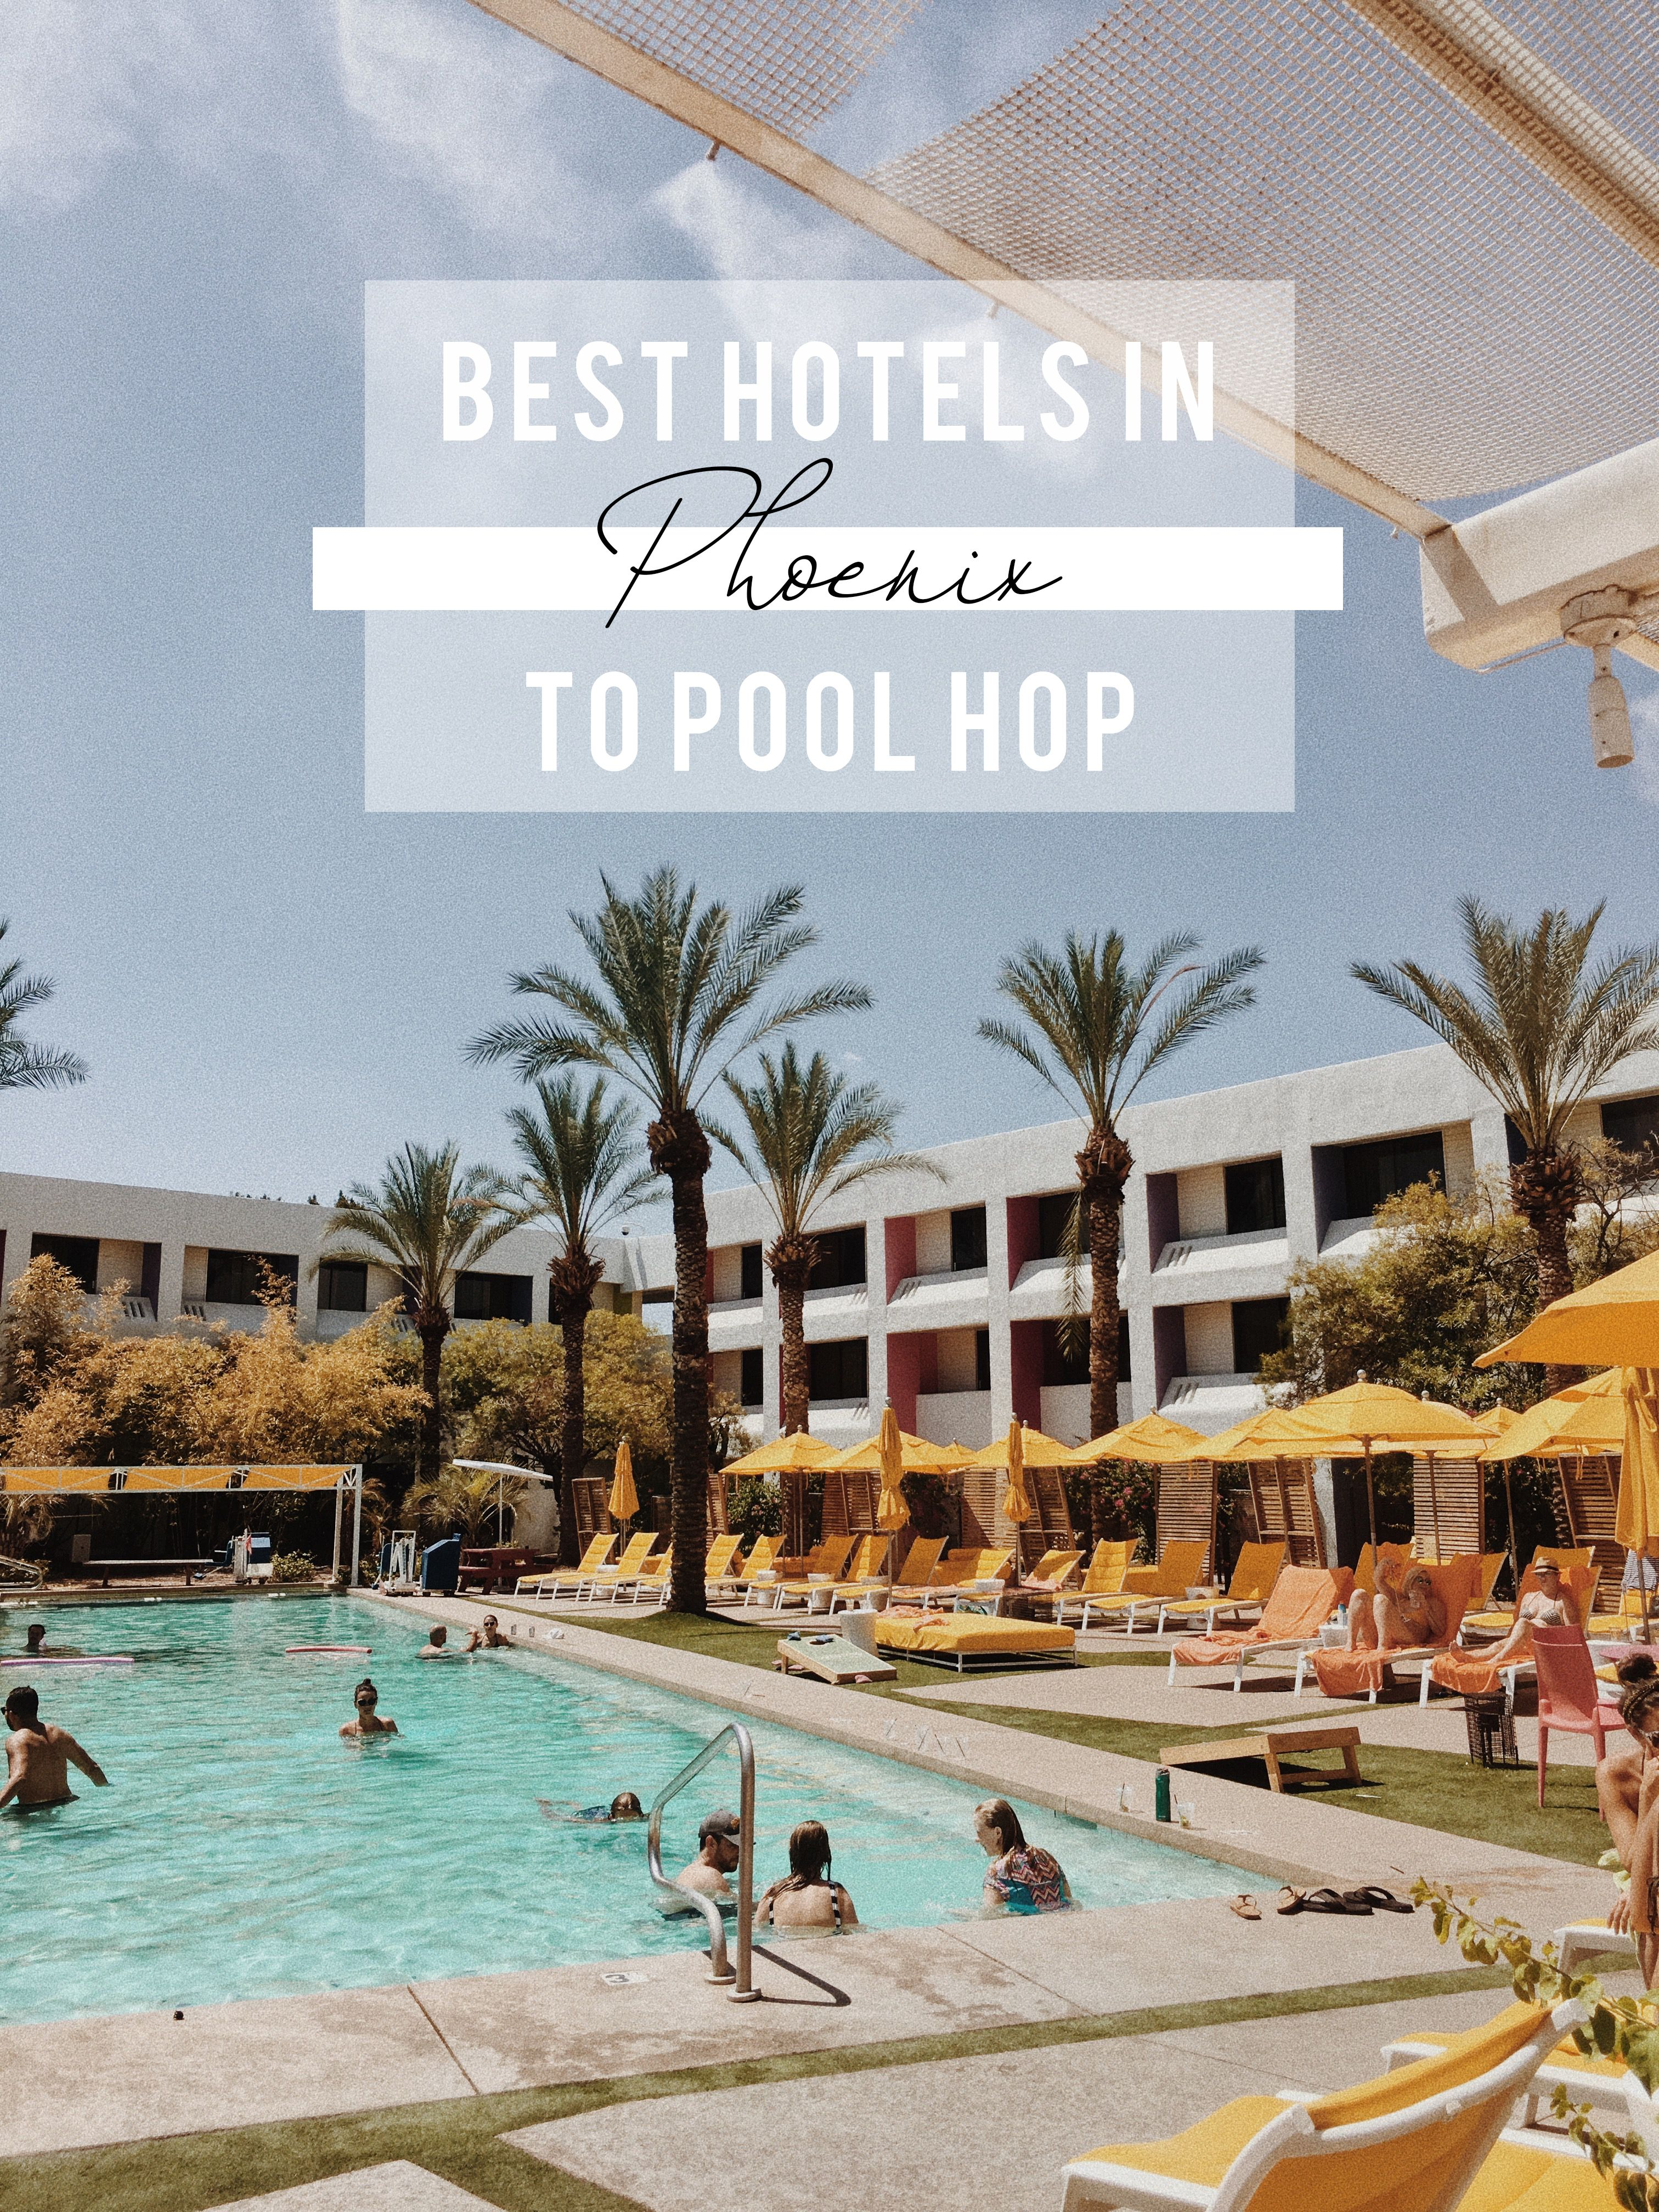 Best Hotels In Phoenix To Pool Hop This Summer With Images